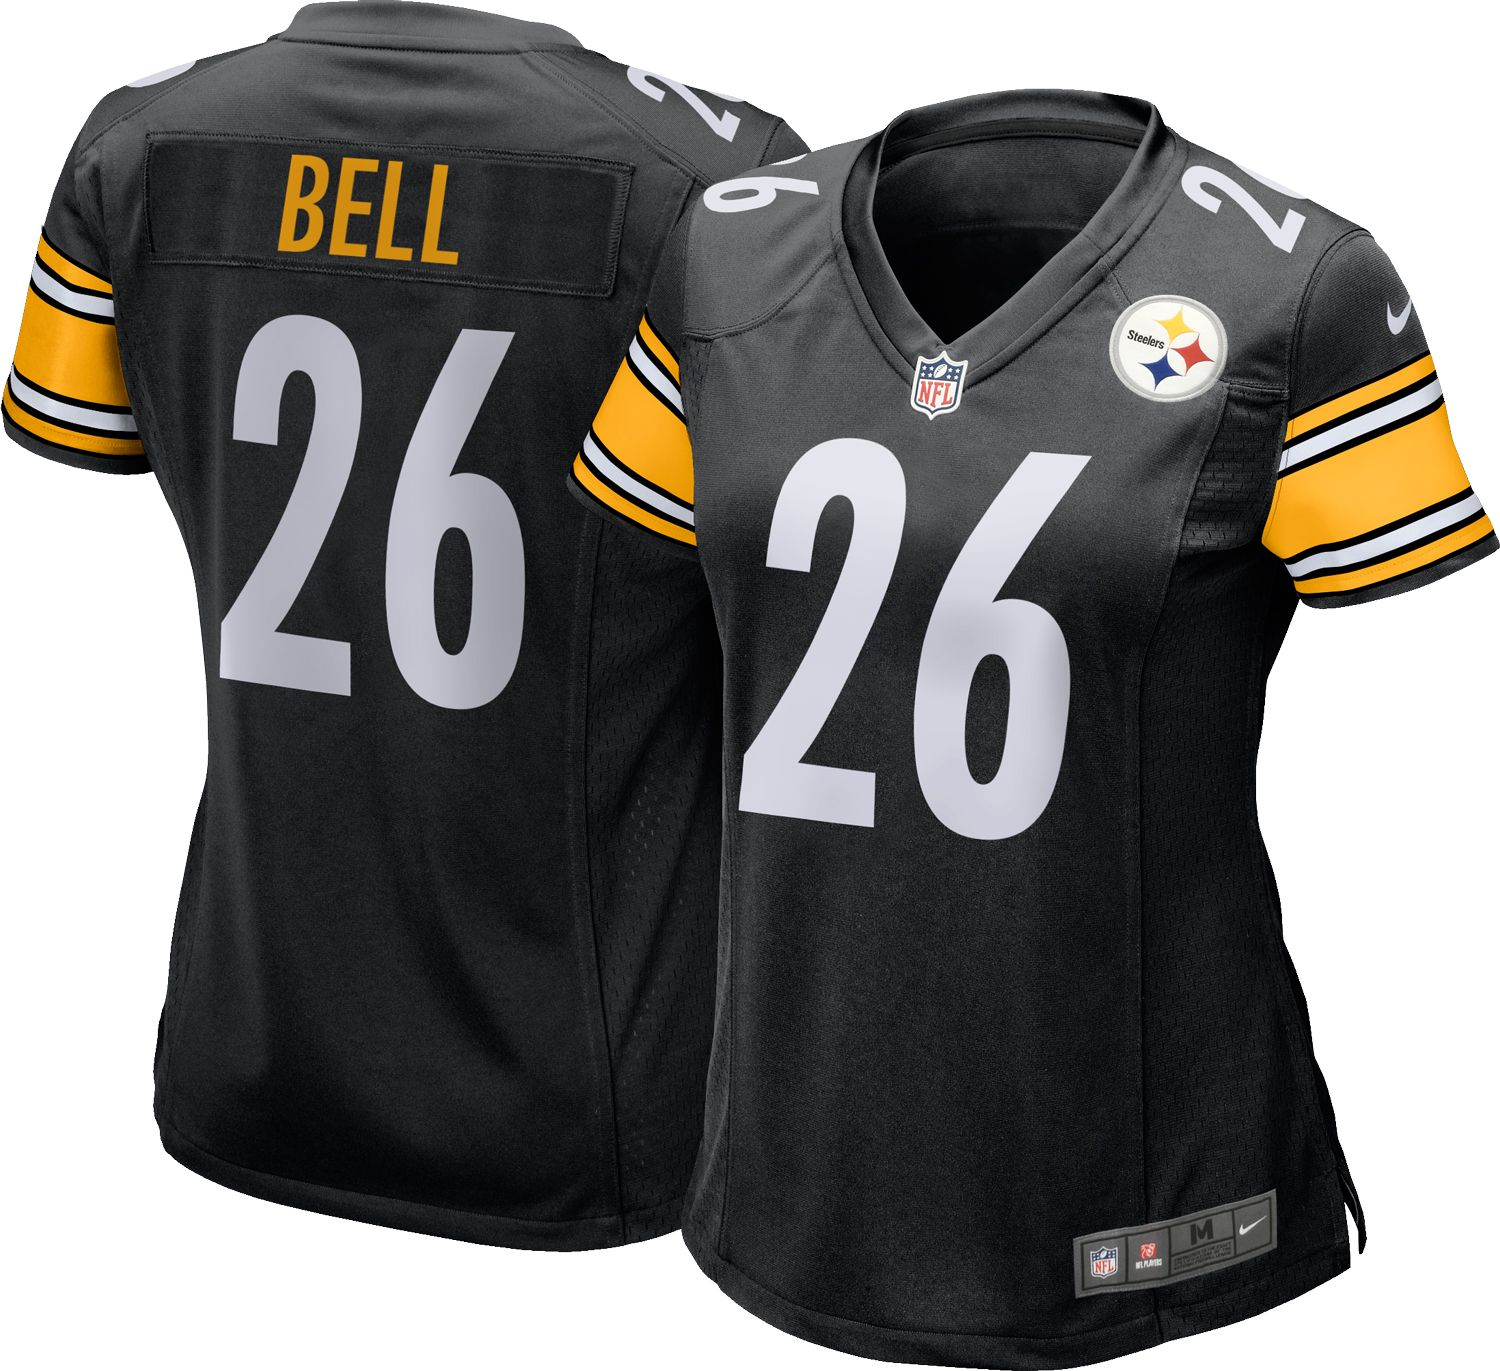 774fba308 nike womens home game jersey pittsburgh steelers leveon bell 26. 000. 000  000.